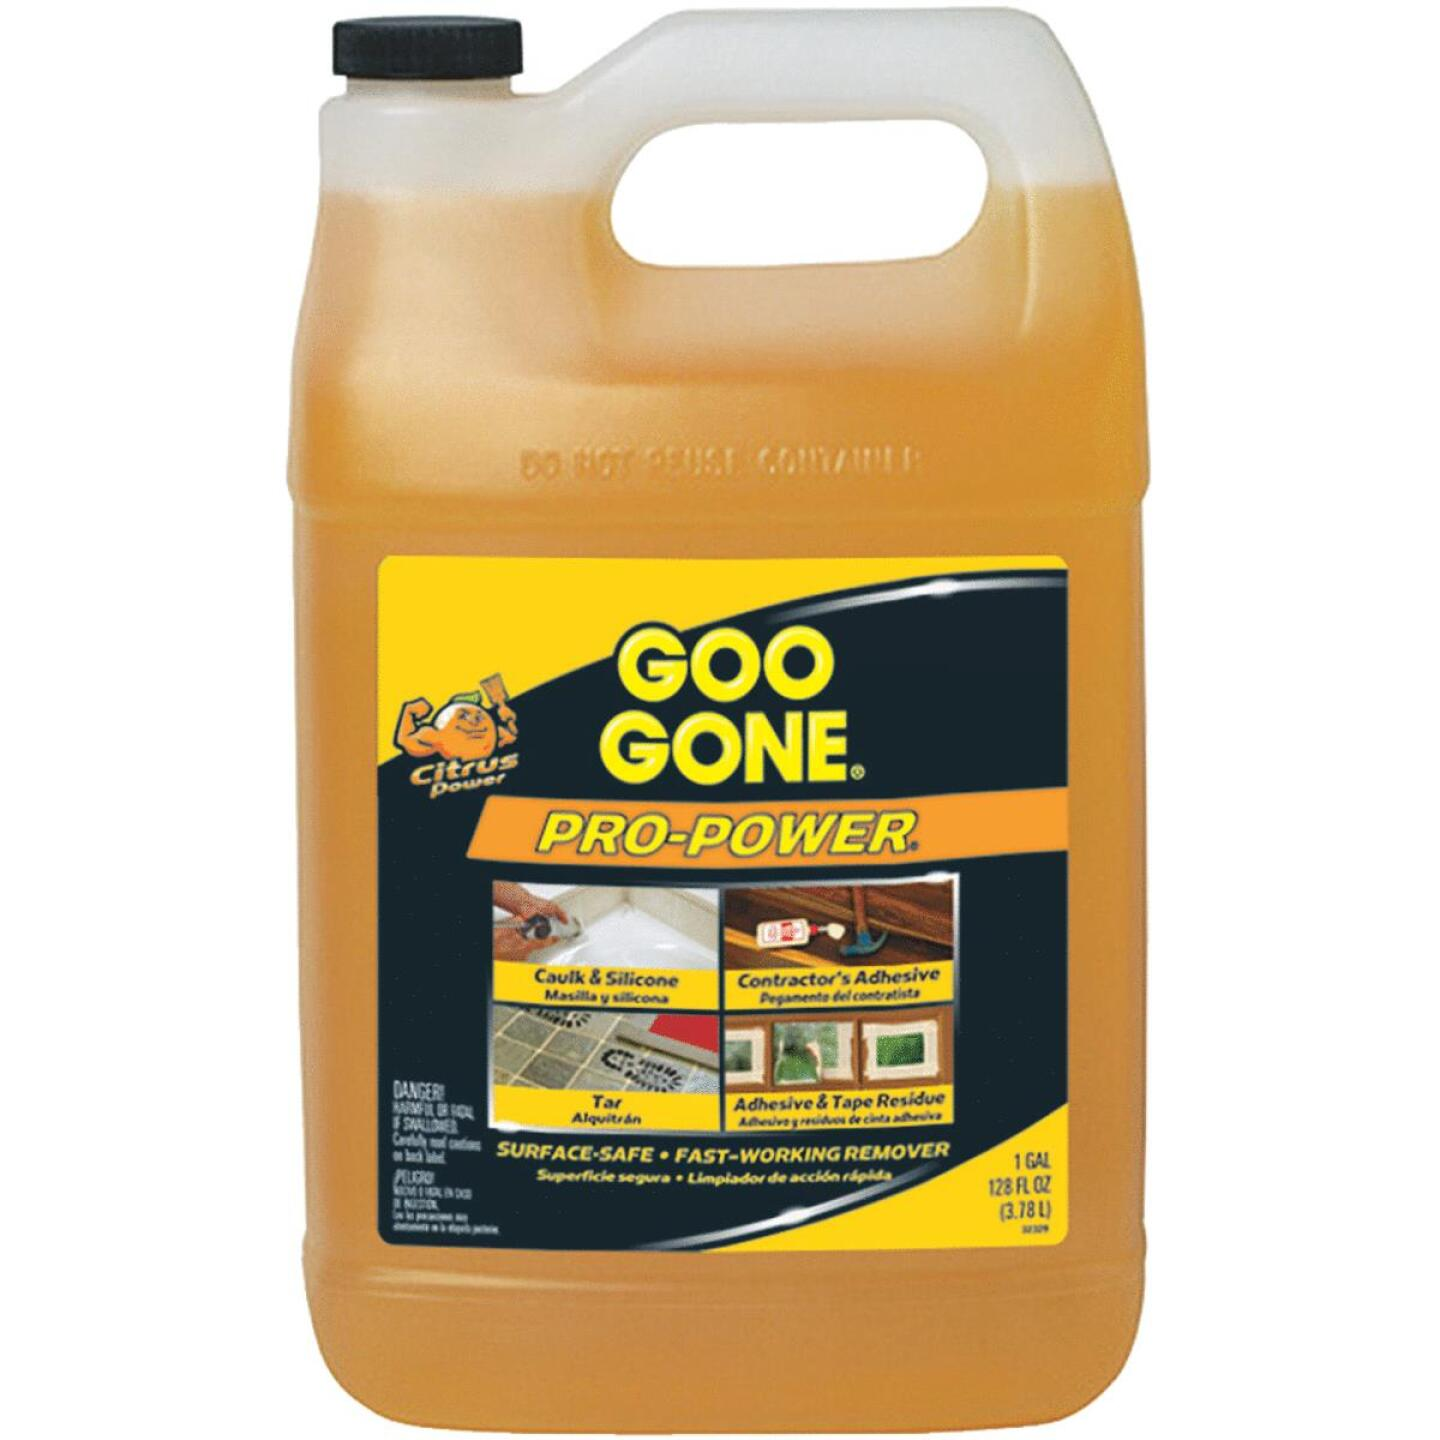 Goo Gone 1 Gal. Pro-Power Adhesive Remover Image 302